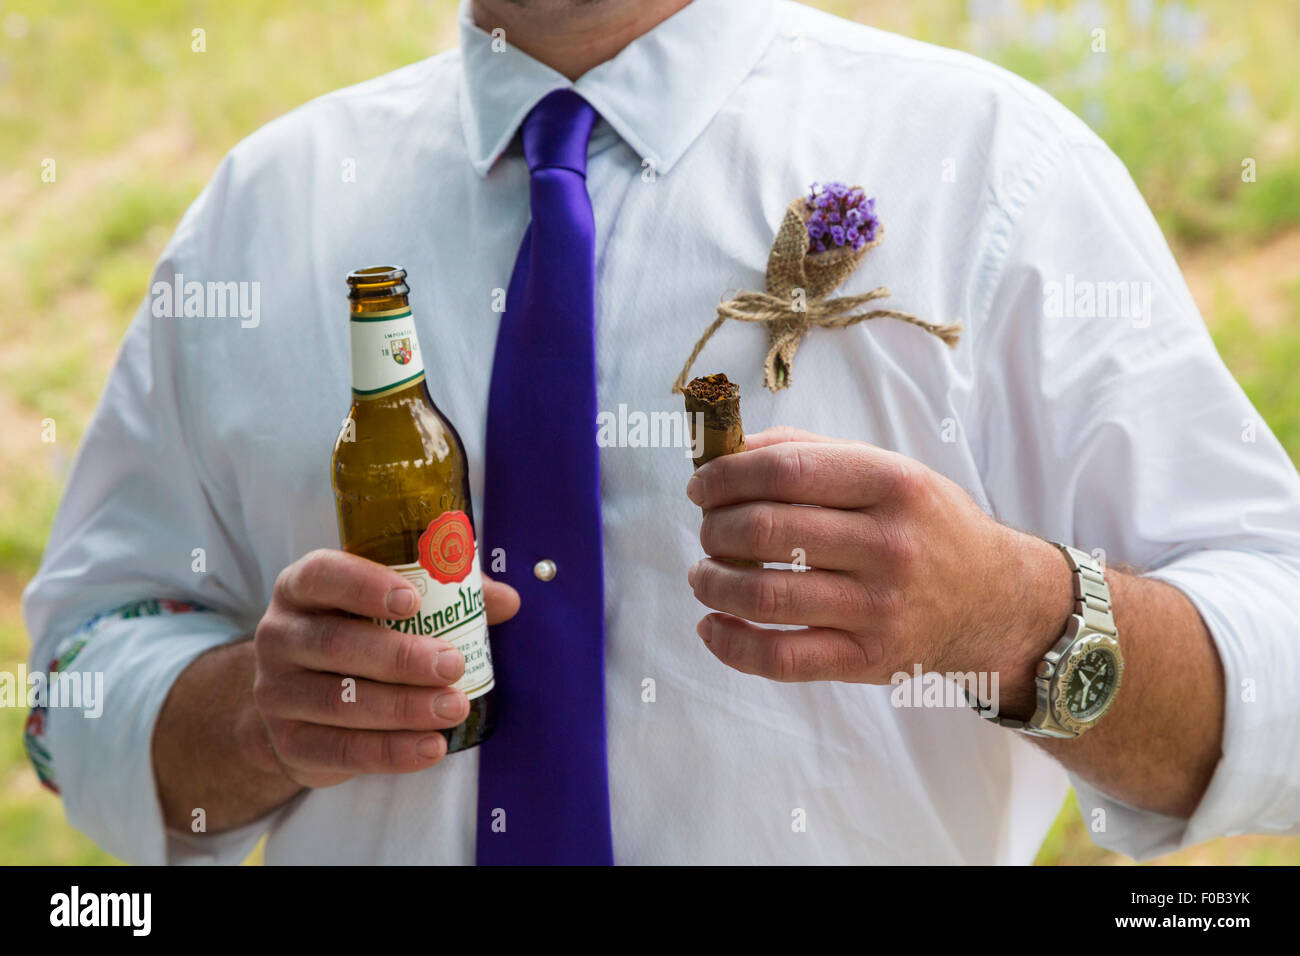 Dillon, Colorado - A man holds a beer and a cigar during a wedding celebration. - Stock Image